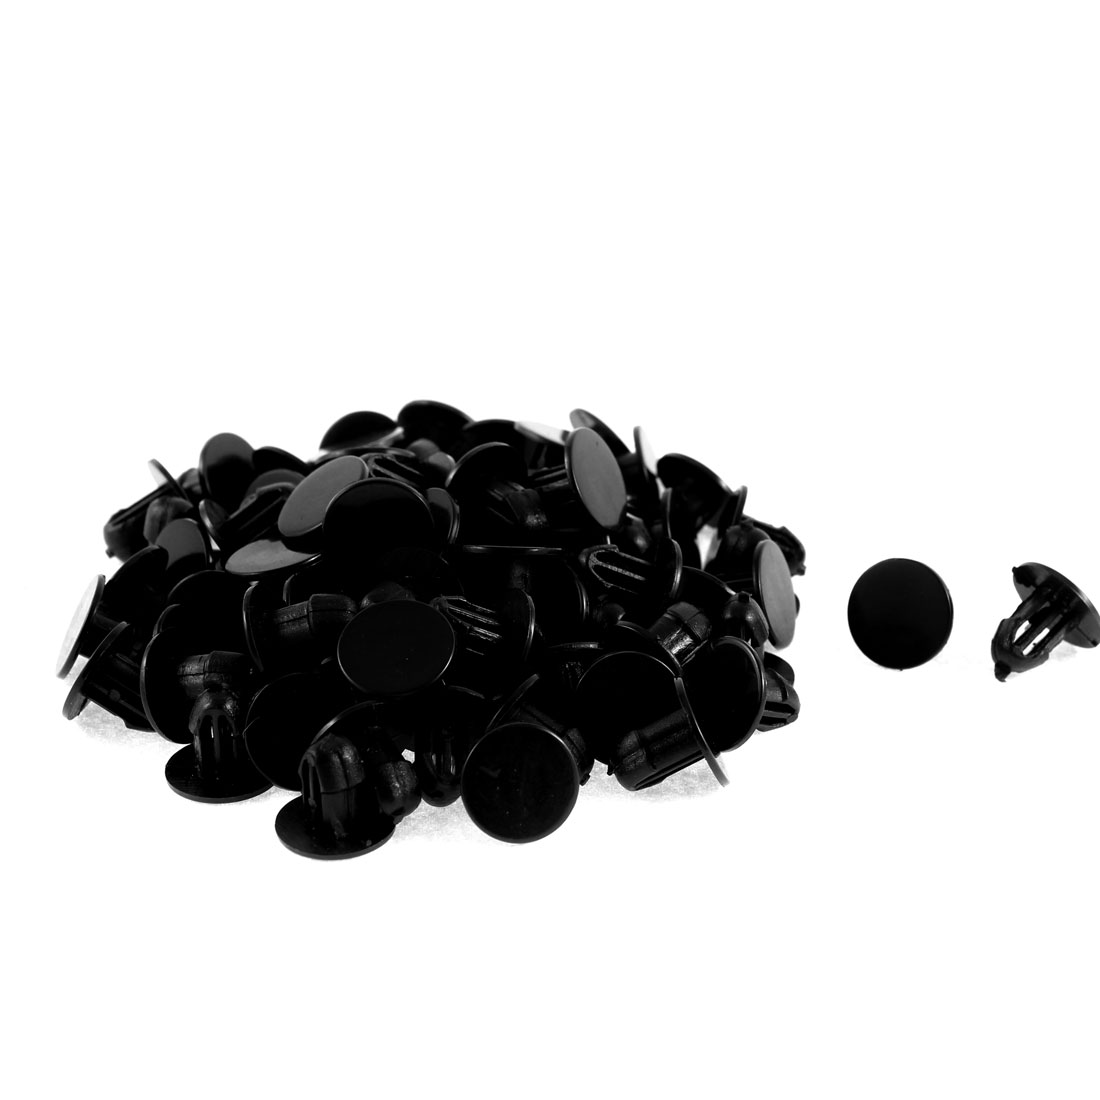 82Pcs Machine Cover Mini Plastic Fastener Clip 6mm Hole Dia for Honda - image 1 of 1